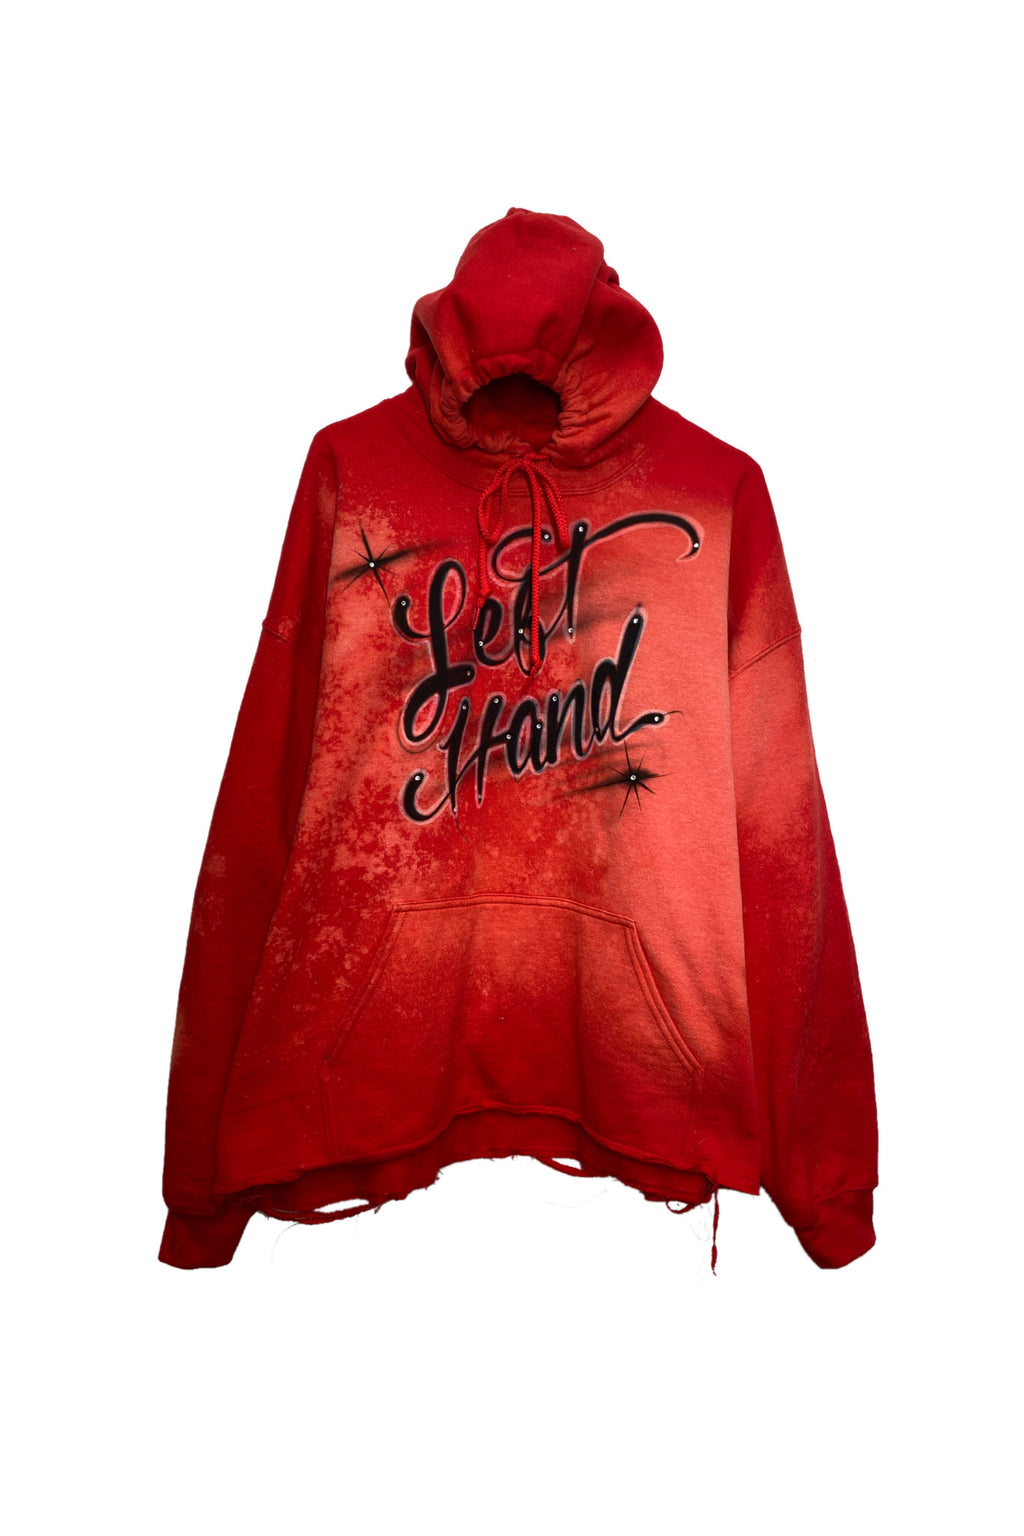 Red left hand hoodie